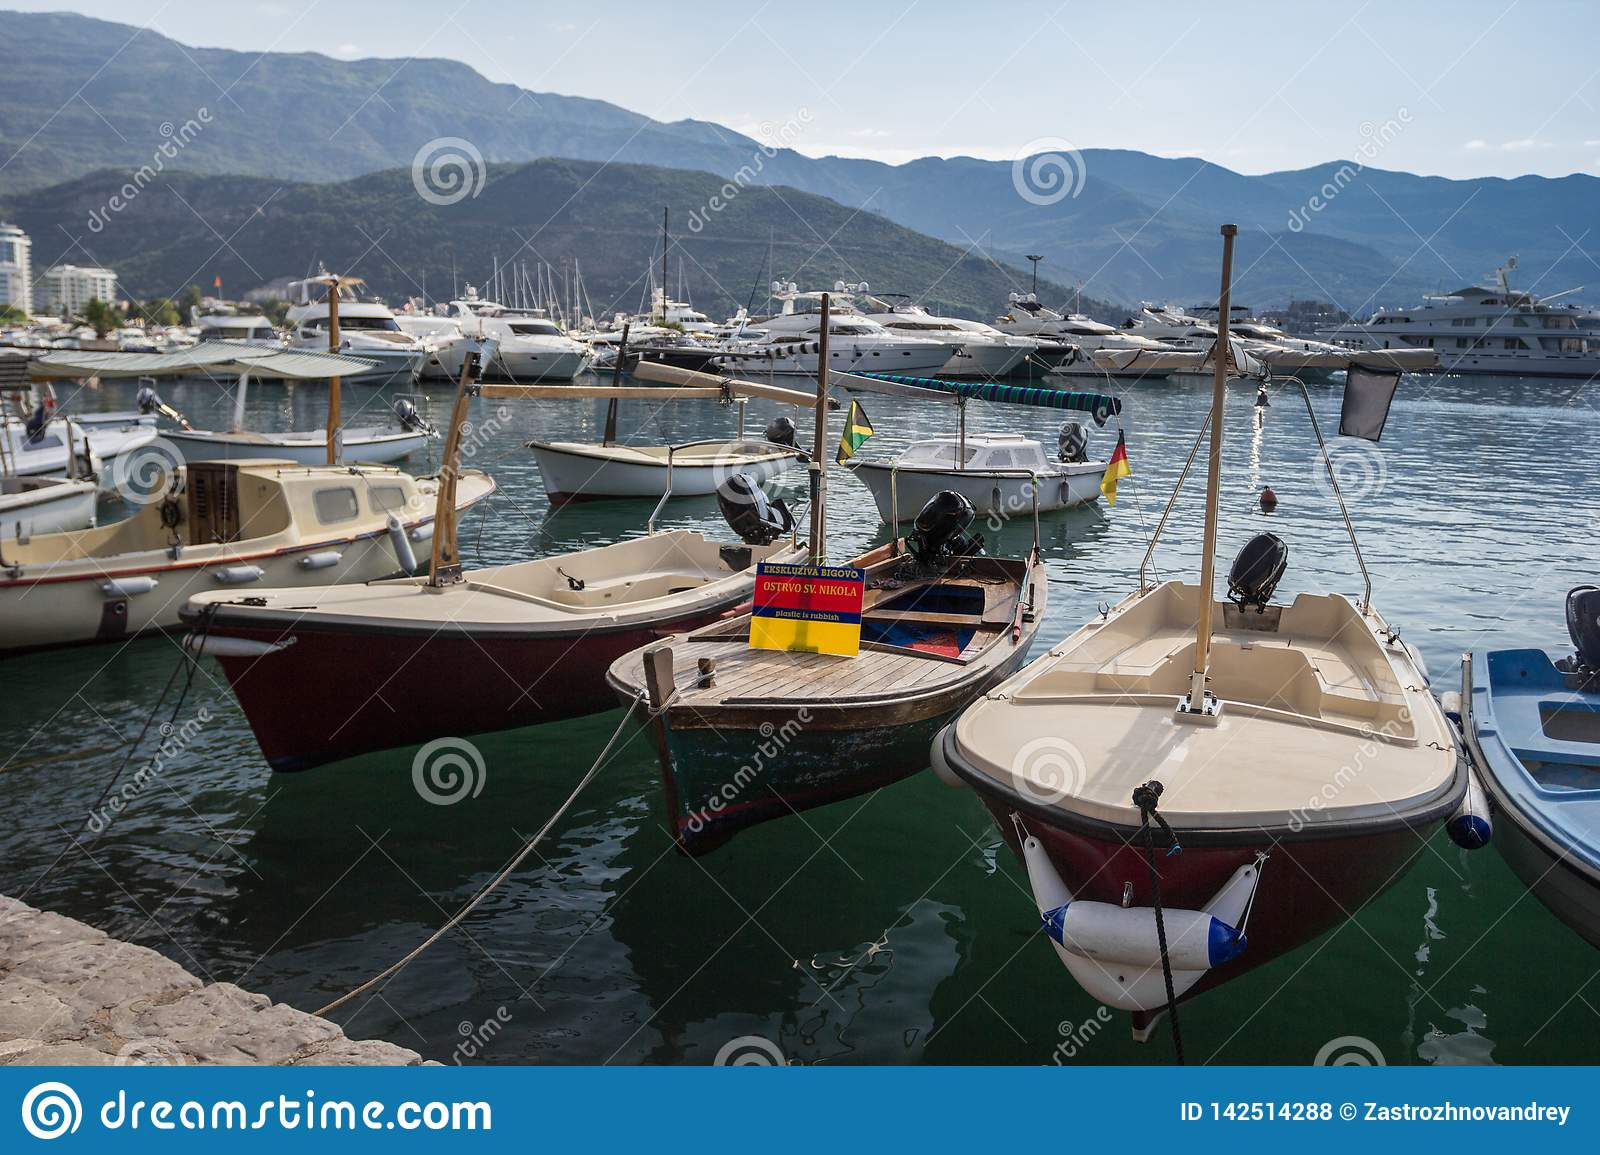 Old boats at the pier on the background of mountains and yachts